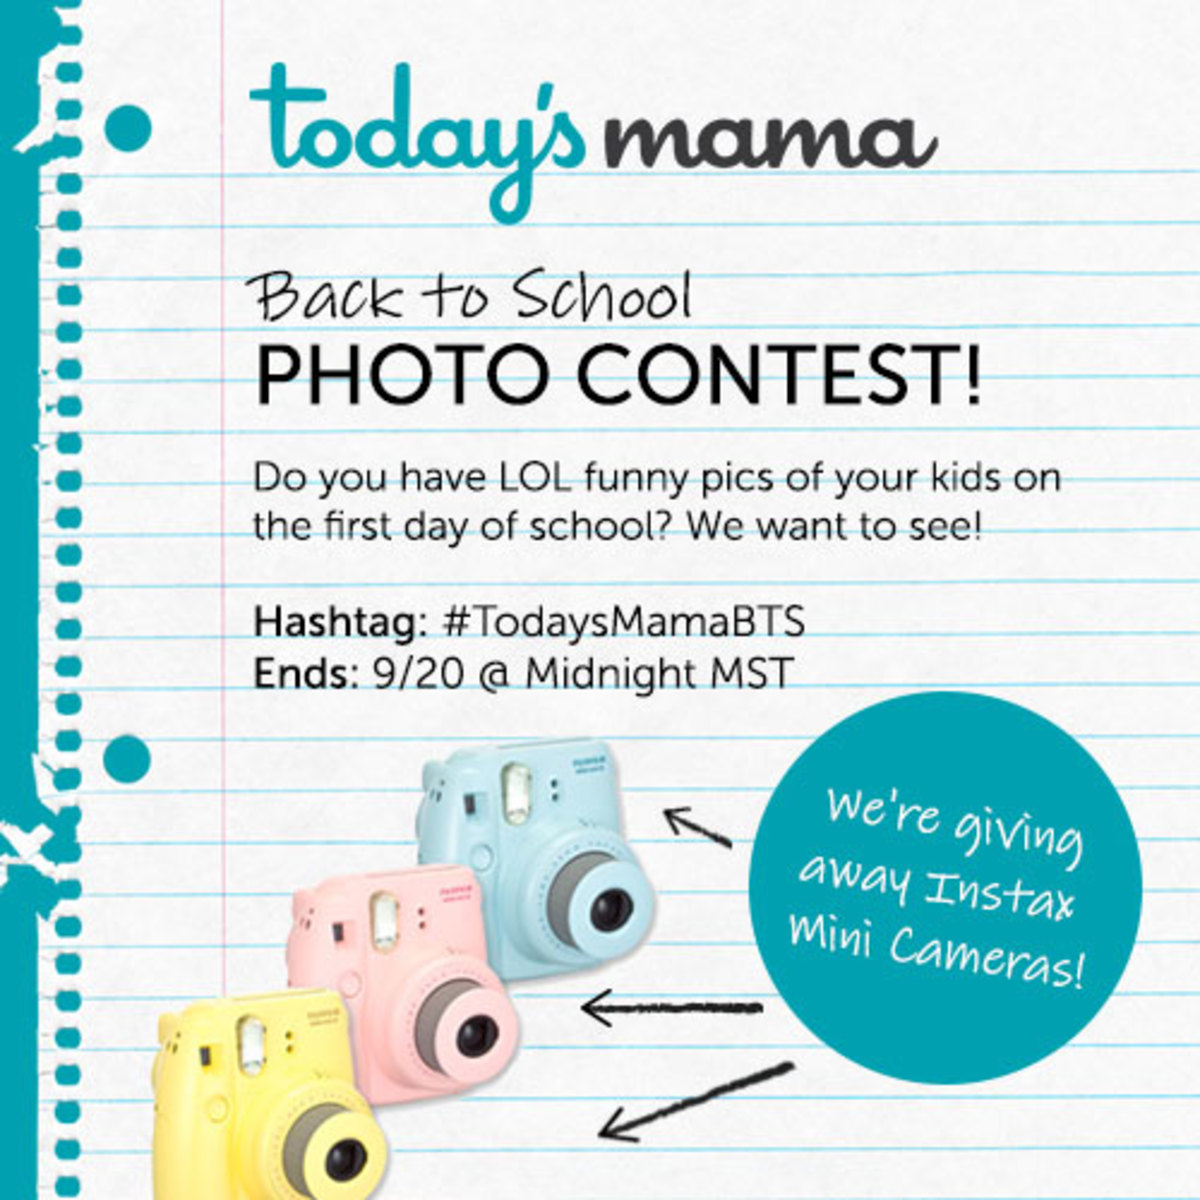 Back To School Photo Contest on TodaysMama.com